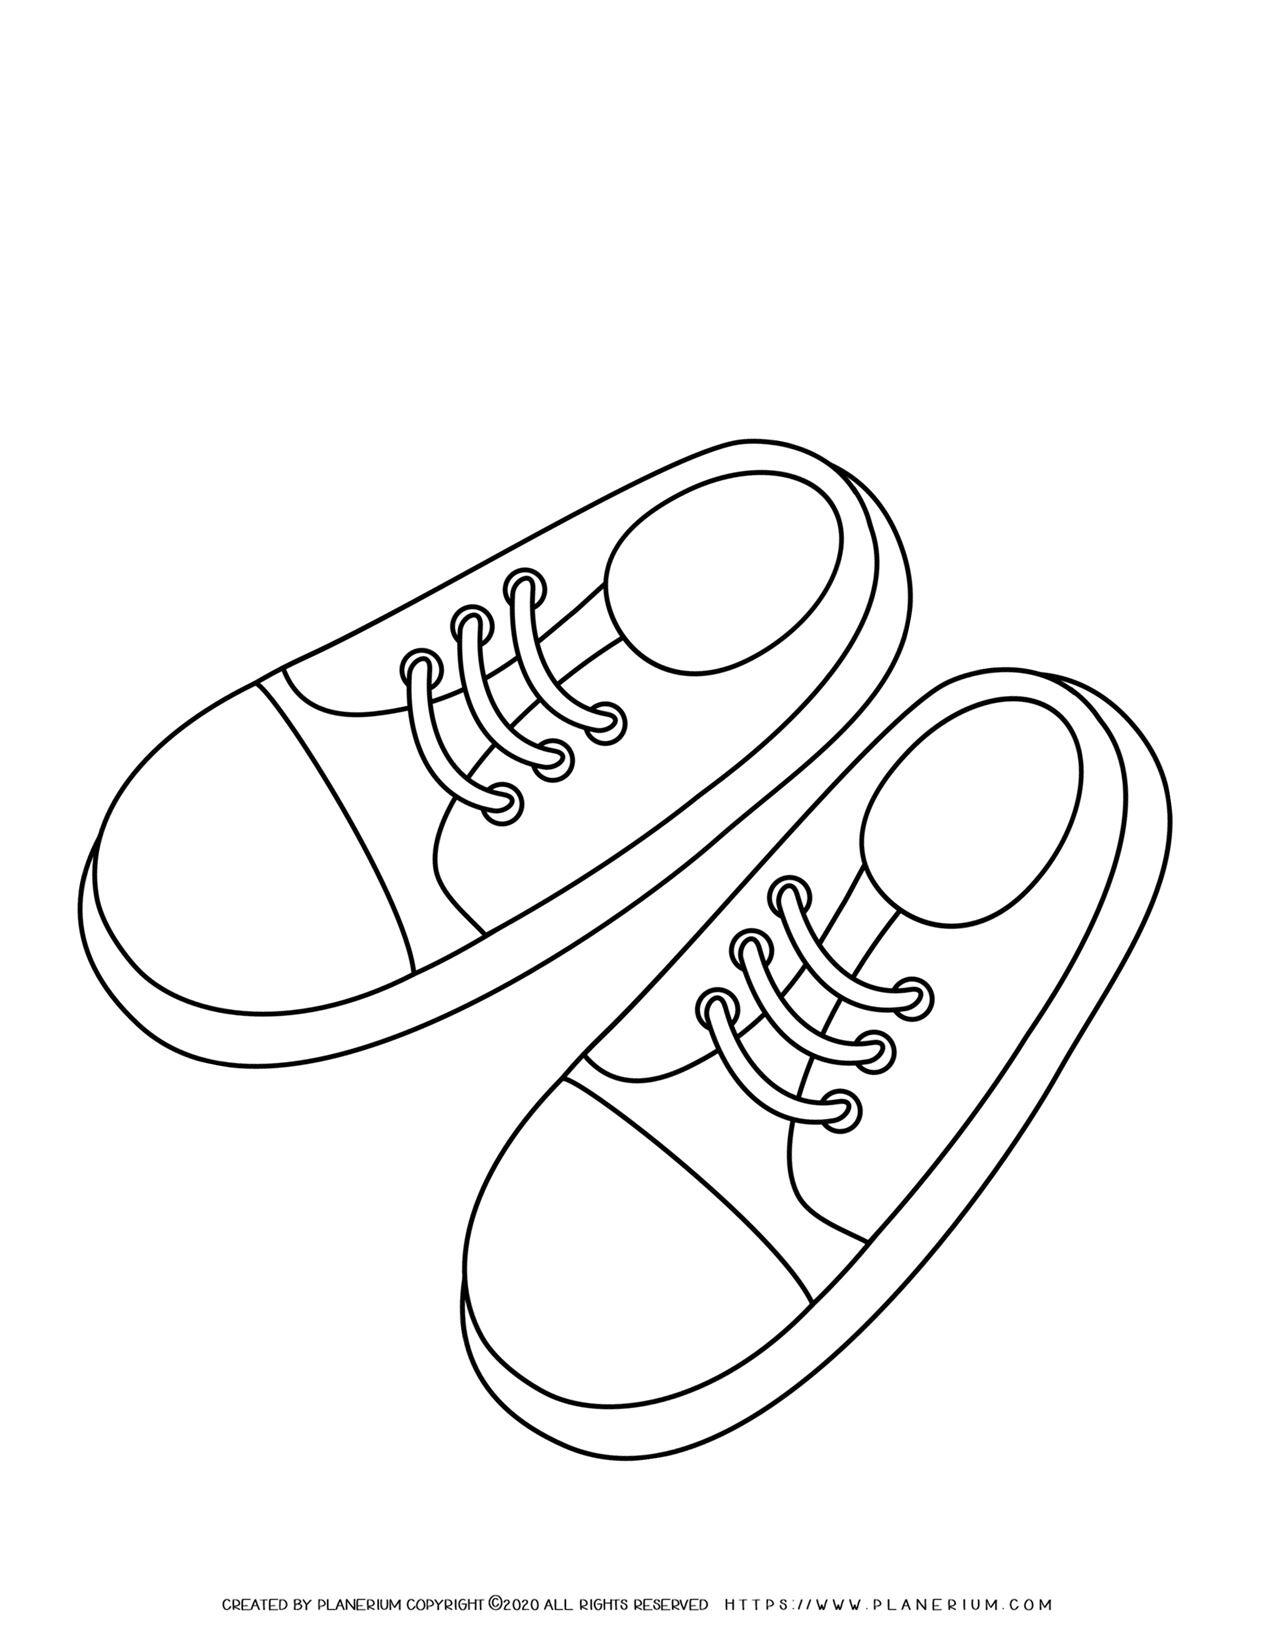 Sneakers Outline | Coloring Page | Planerium